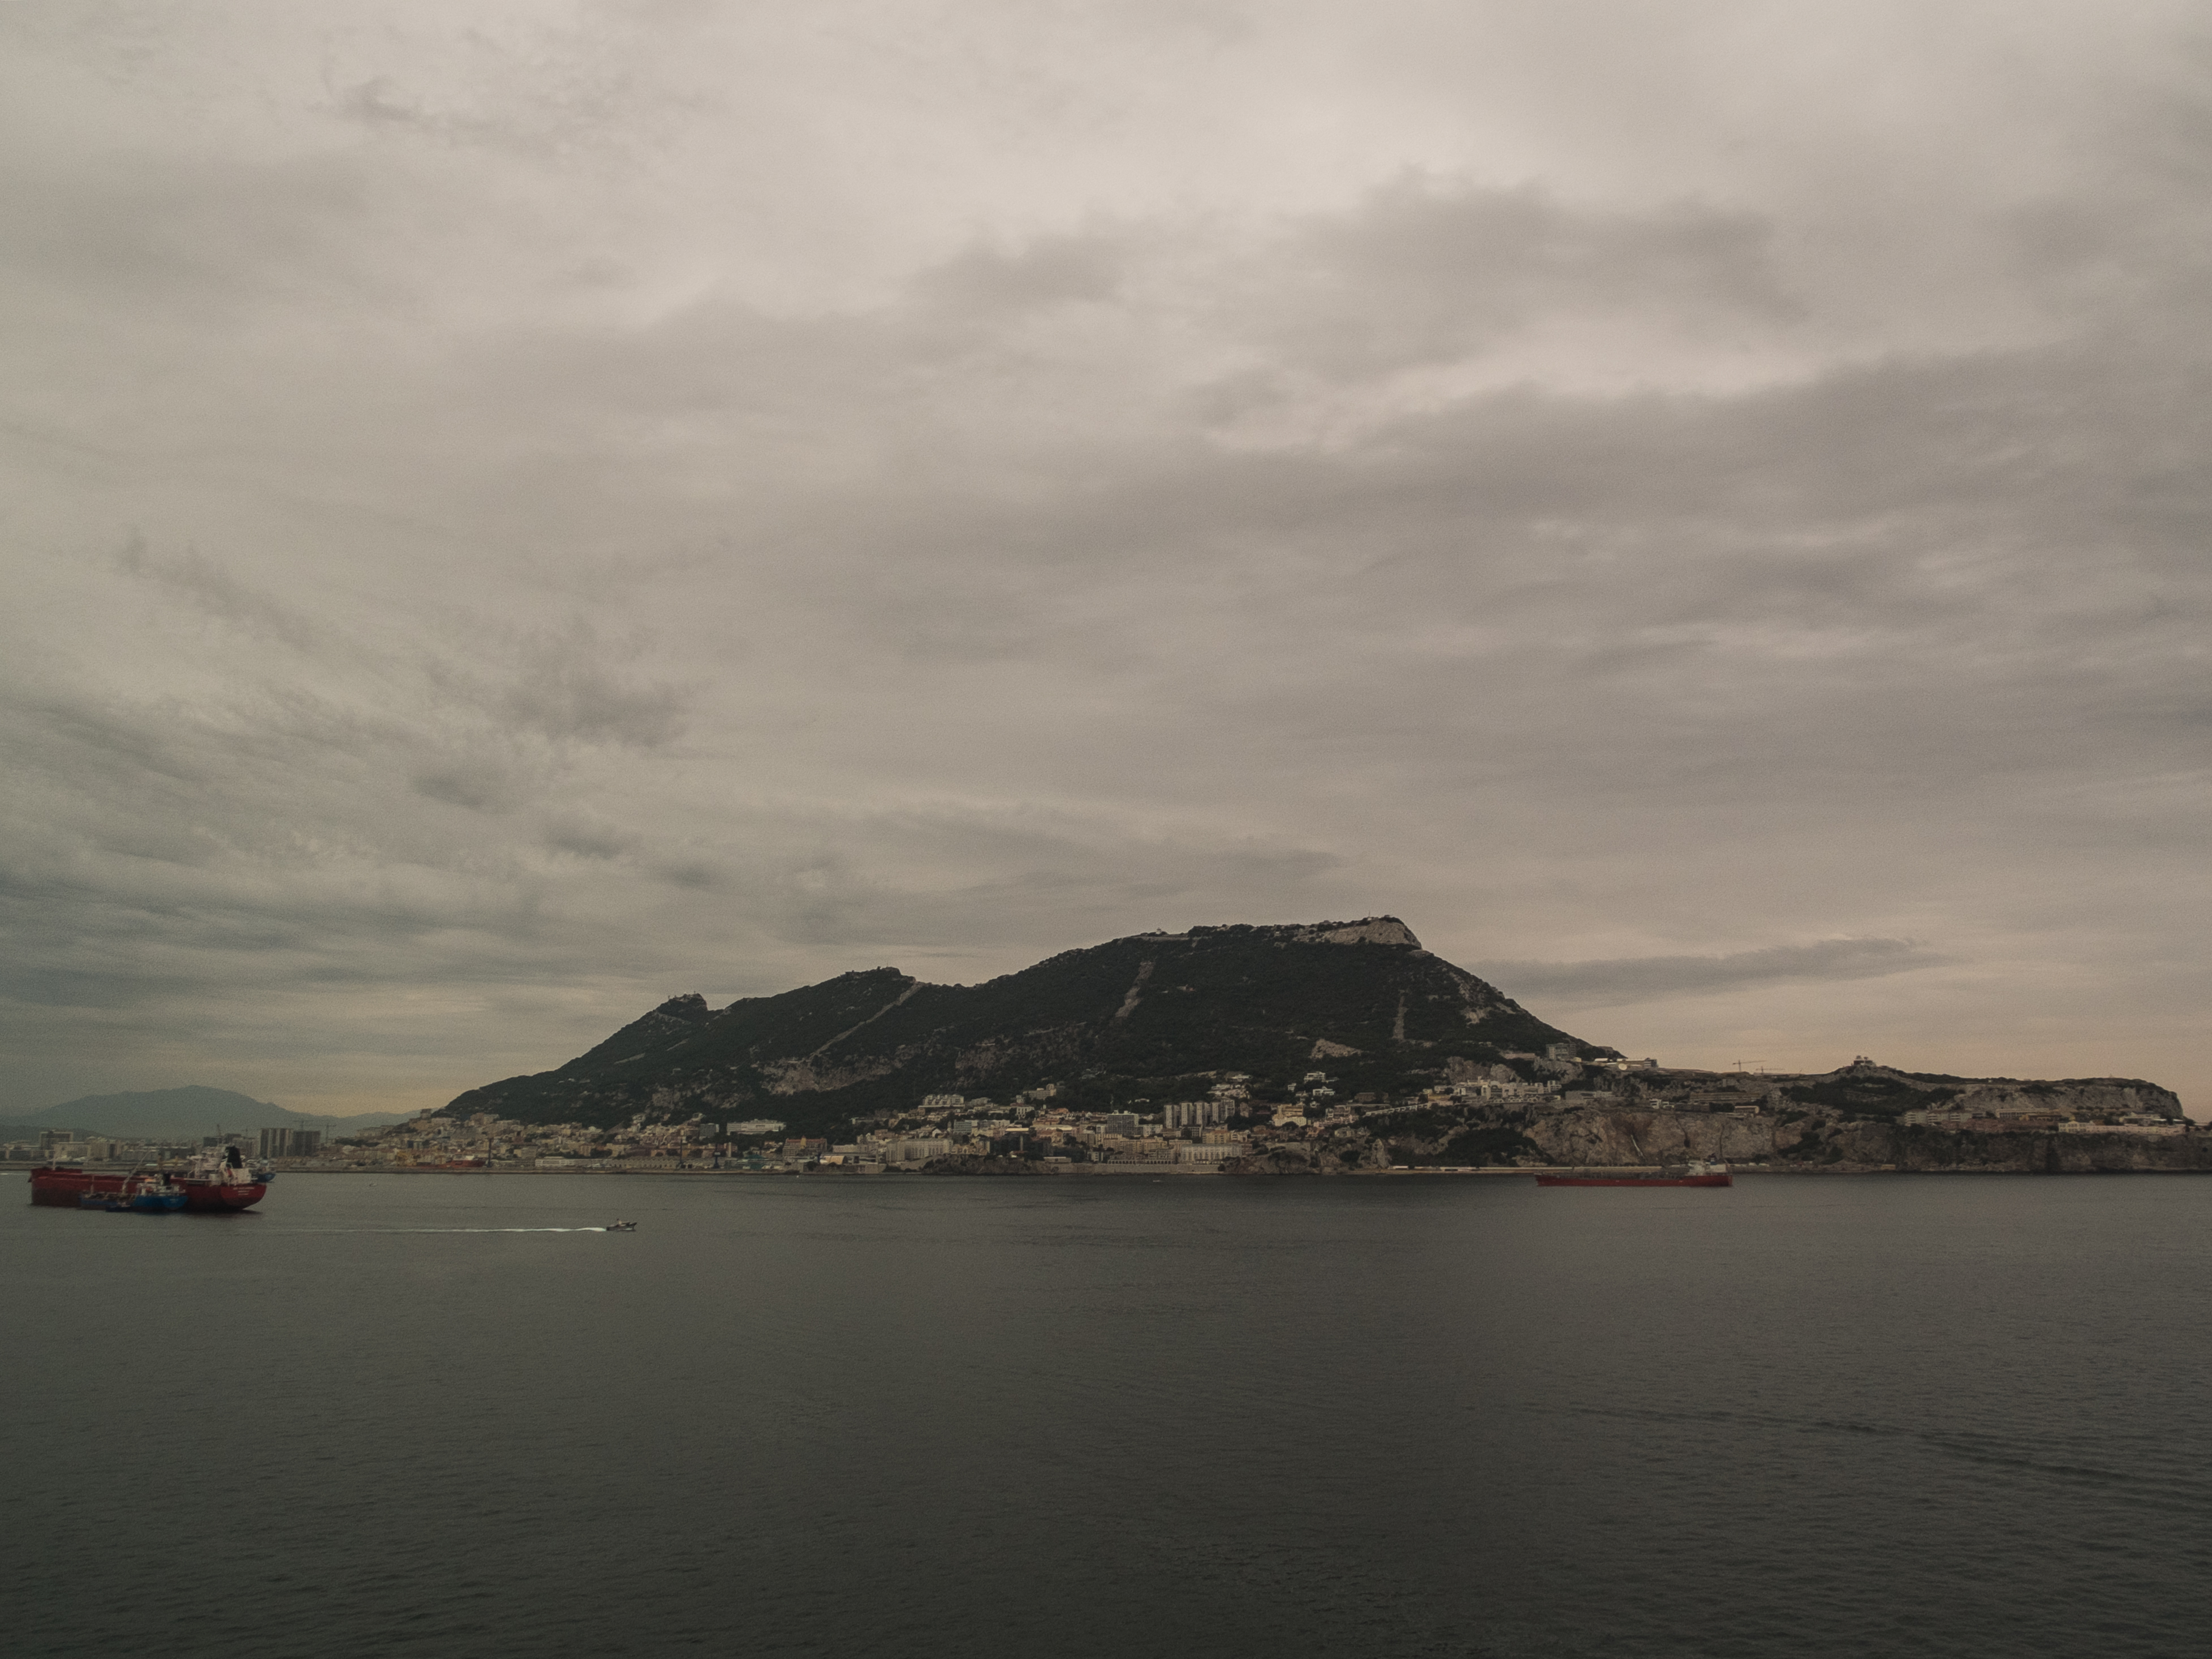 The landscape of Gibraltar captured from the water.